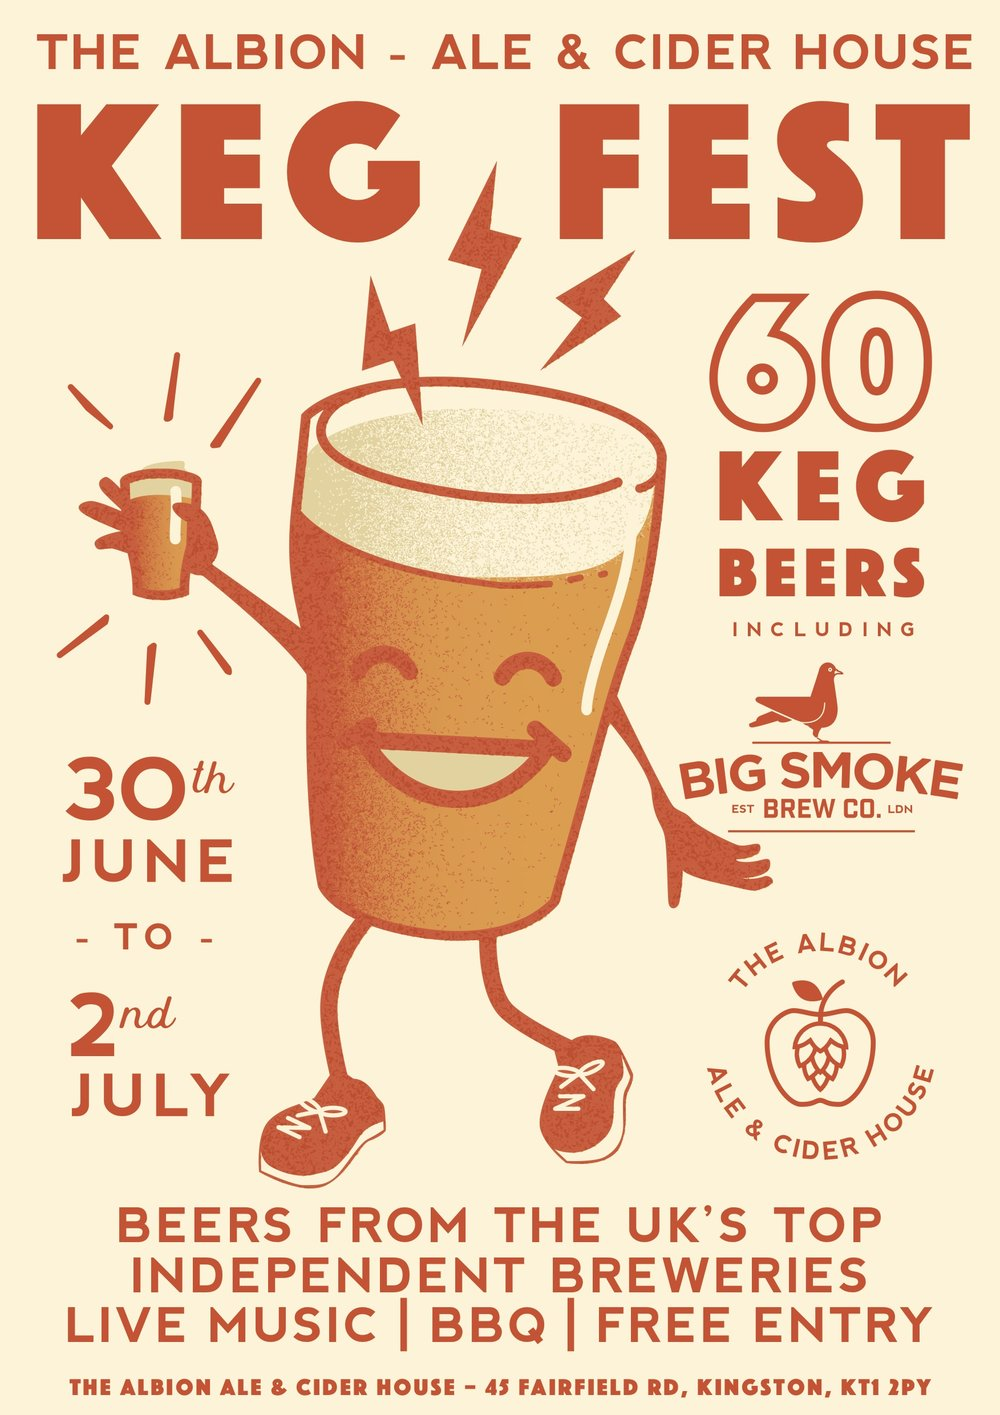 KEG FEST! Come see us from the 30th of June to the 2nd of July. We'll have a massive 60 keg beers from the best independent breweries from the UK and beyond.  Cloudwater / Verdant / Deya / Magic Rock / Brewski / Tilquin / Founders / Sierra Nevada / Tiny Rebel / Howling Hops / Weird Beard / Gypsy Hill / Wylam / Northern Monk / Brew By Numbers / Kernel / Siren / Wild Beer Co / Marble / Big Smoke And loads more!  BBQ / Hog Roast / DJs / Good times  See you here!